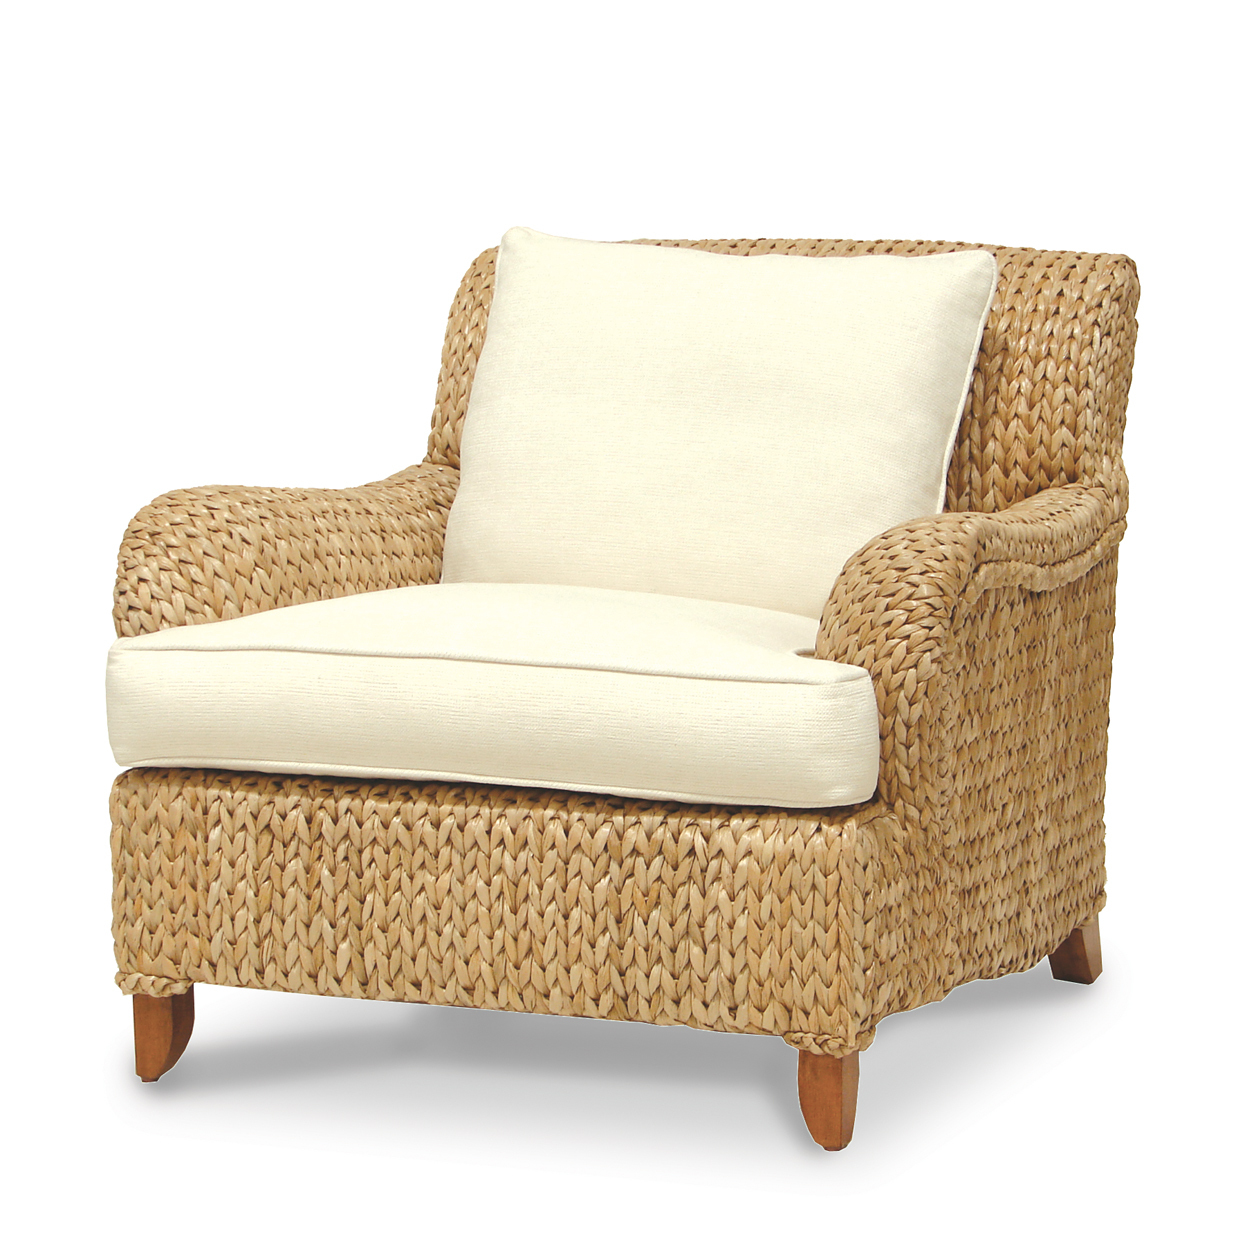 Sweater Weave Seagrass Lounge Chair Www Pacificheightsplace Com